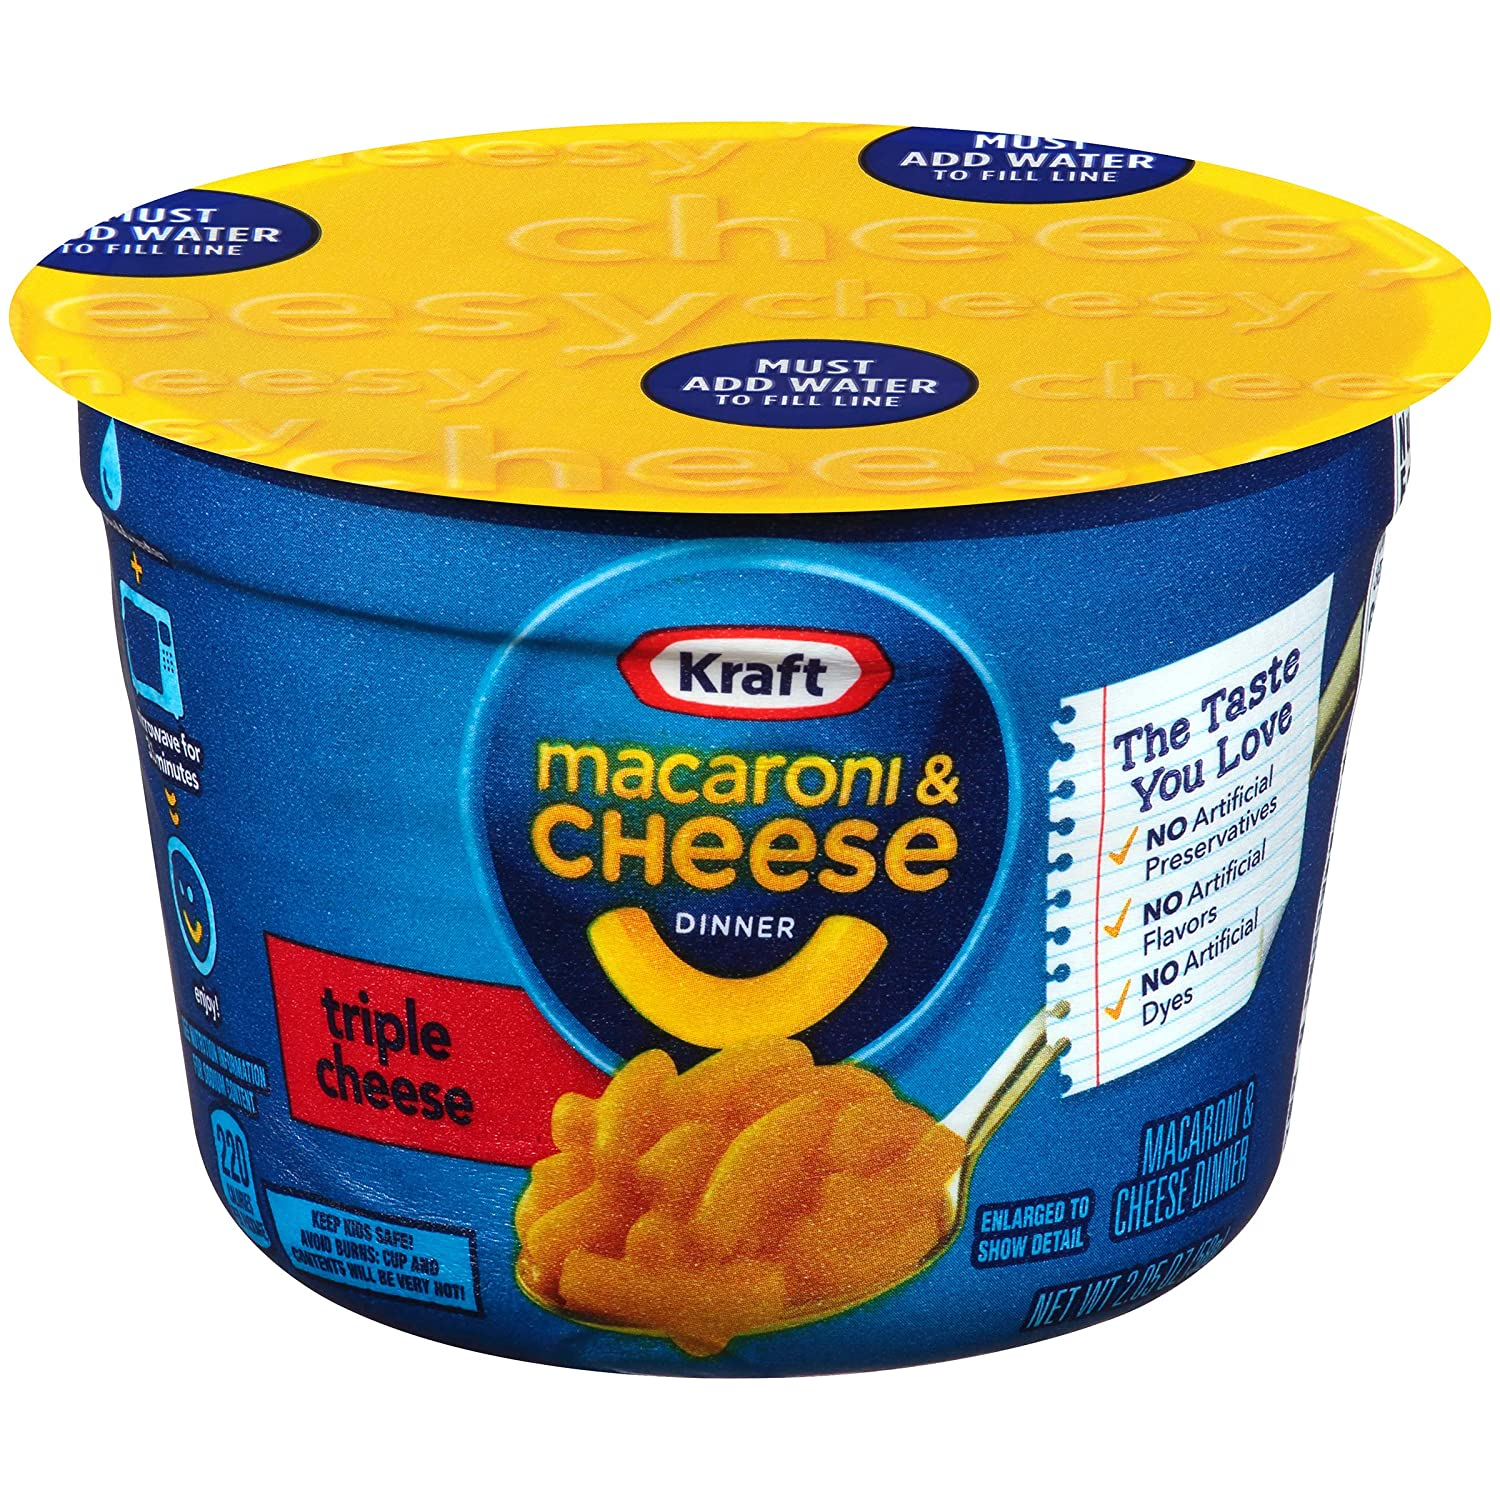 Kraft Easy Mac Triple Cheese Microwavable Cup (2.05 oz Cups, Pack of 10)